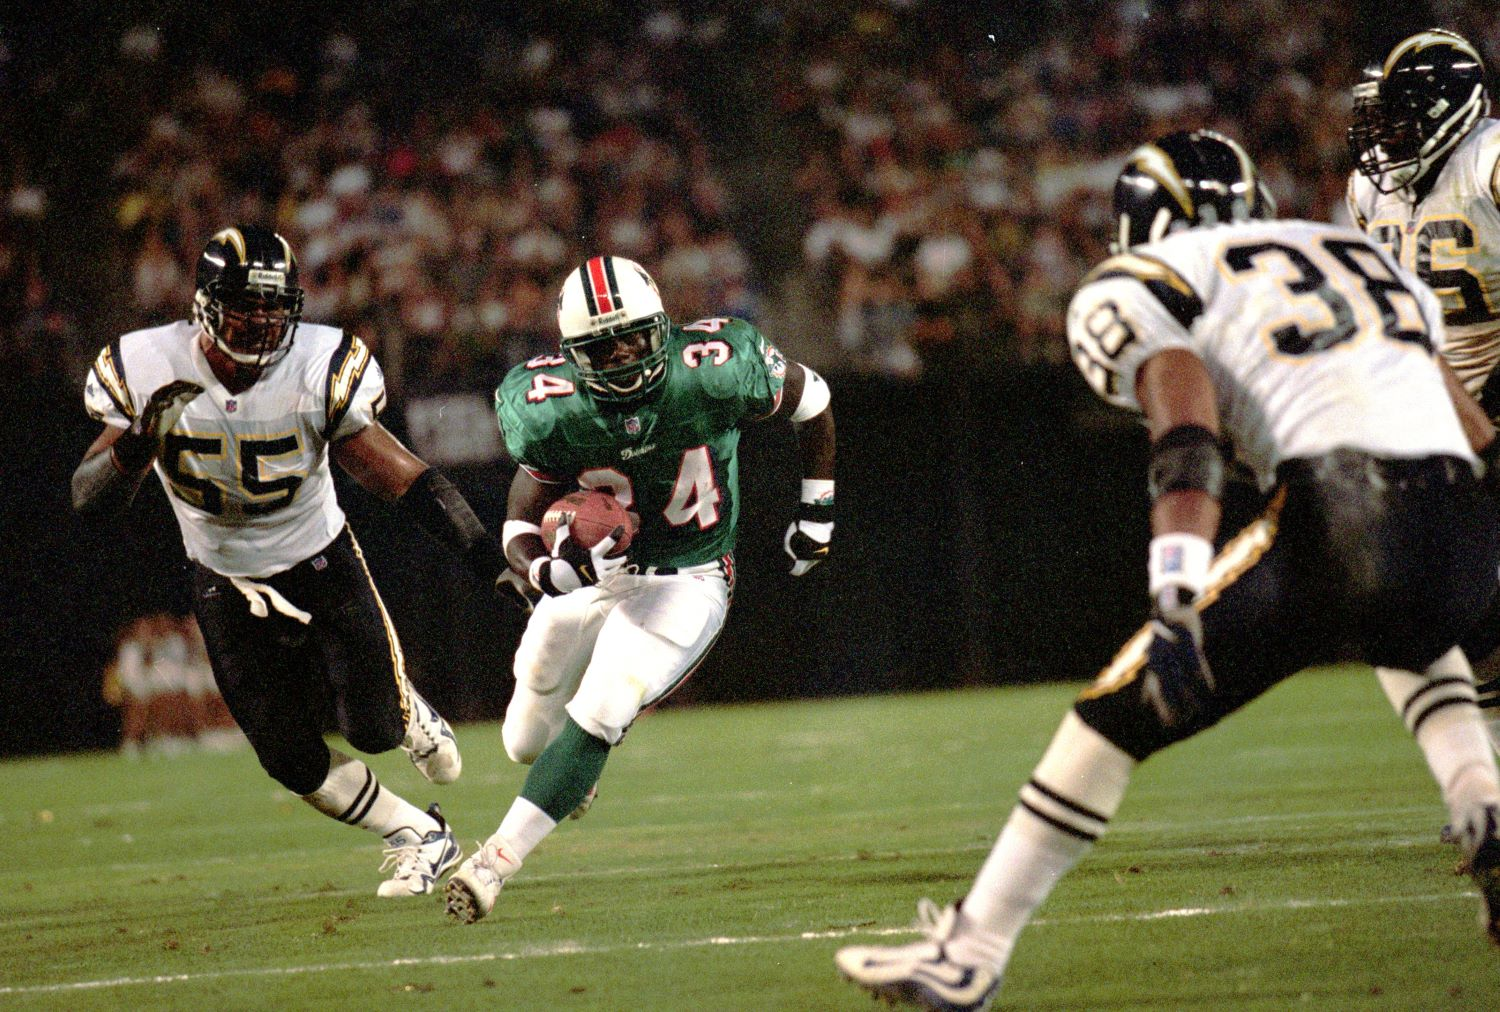 Former Dolphins RB Cecil Colllins lost 13 years of his freedom because of a bizarre crime that involved wanting to watch a woman sleep.